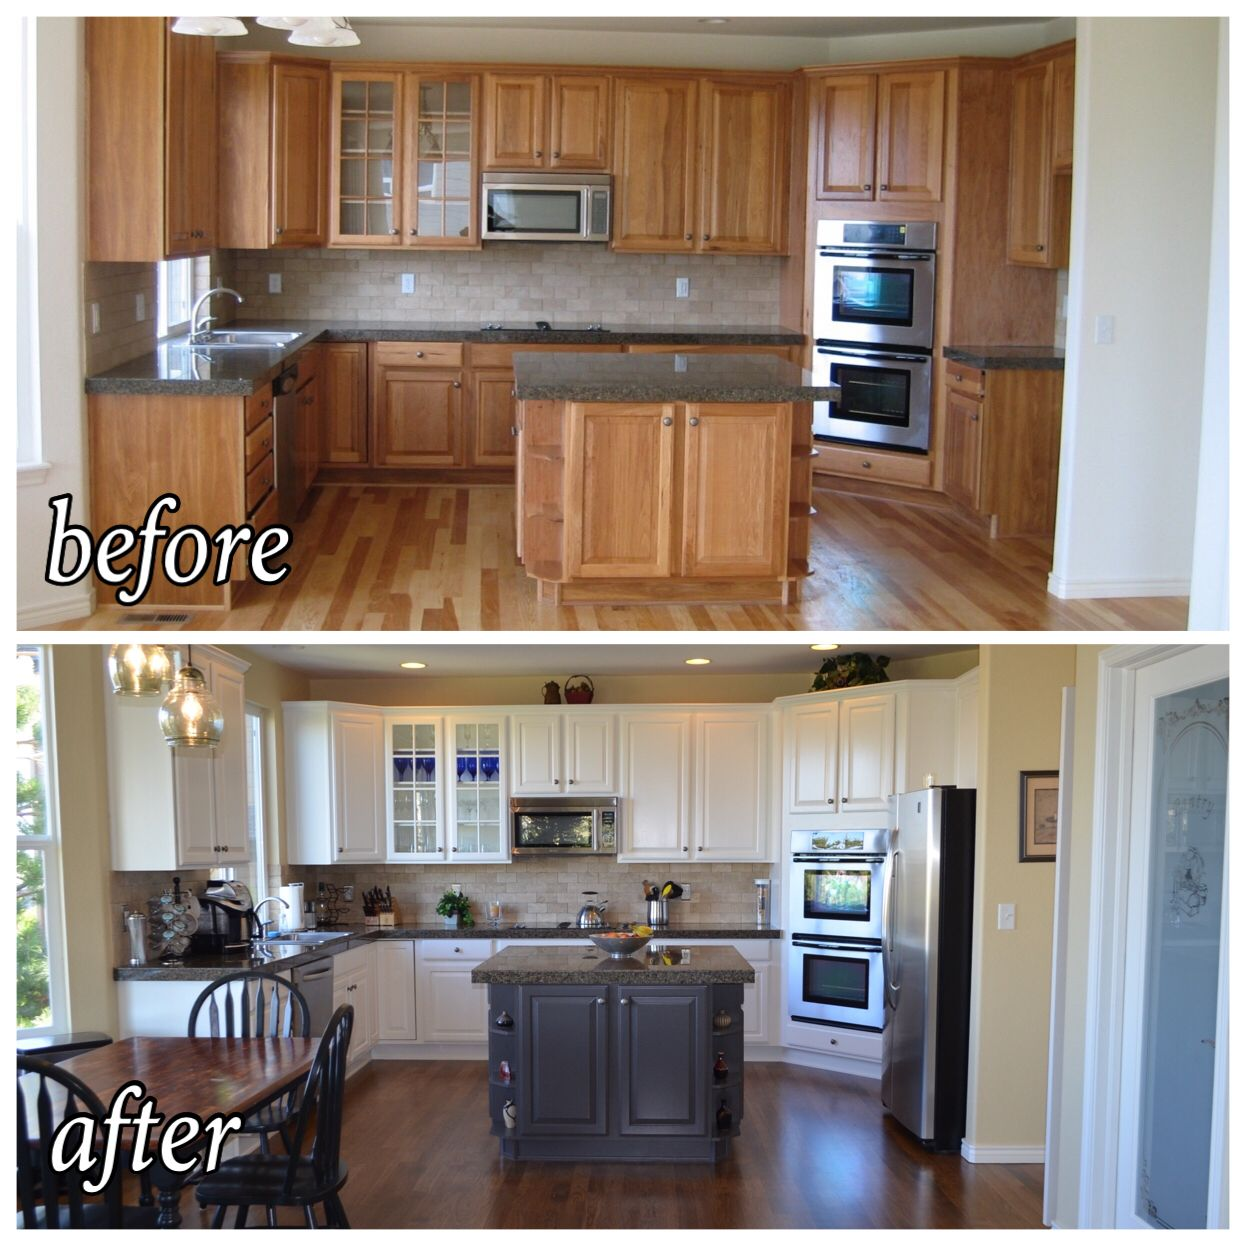 Kitchen Updates Before And After: Before After Of Kitchen Update. Painted Cabinets, Darker